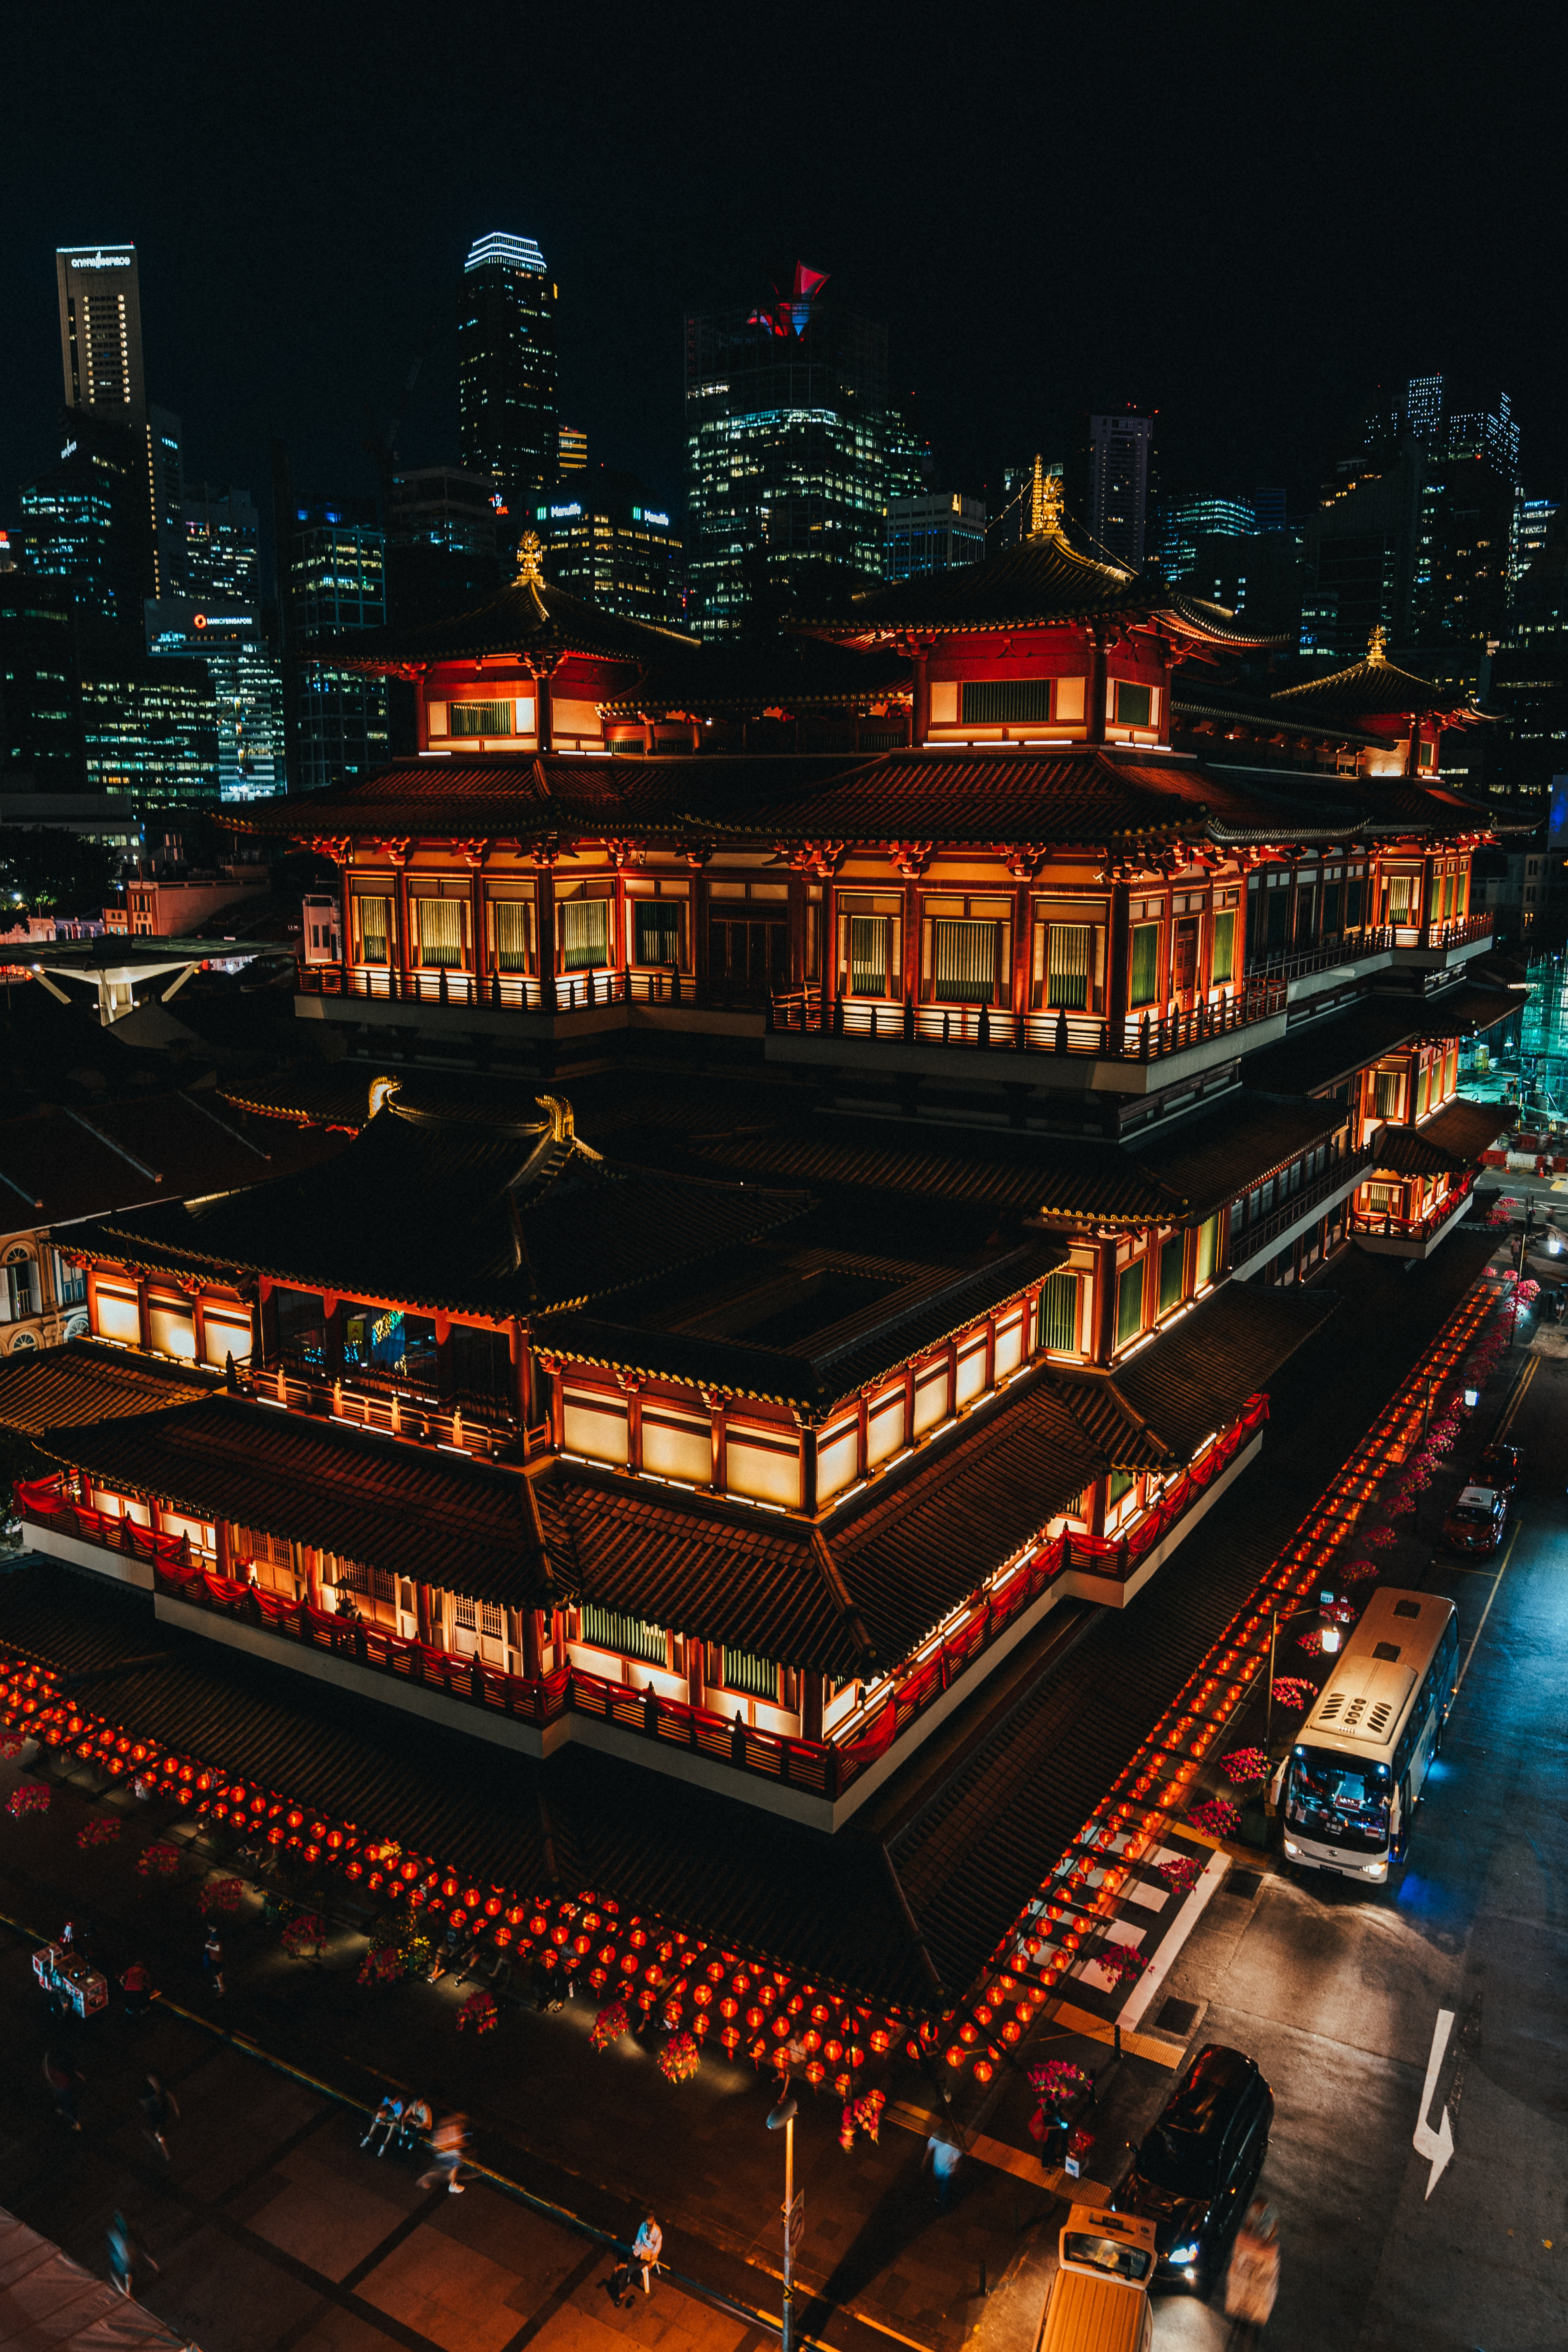 red lighted temple at night